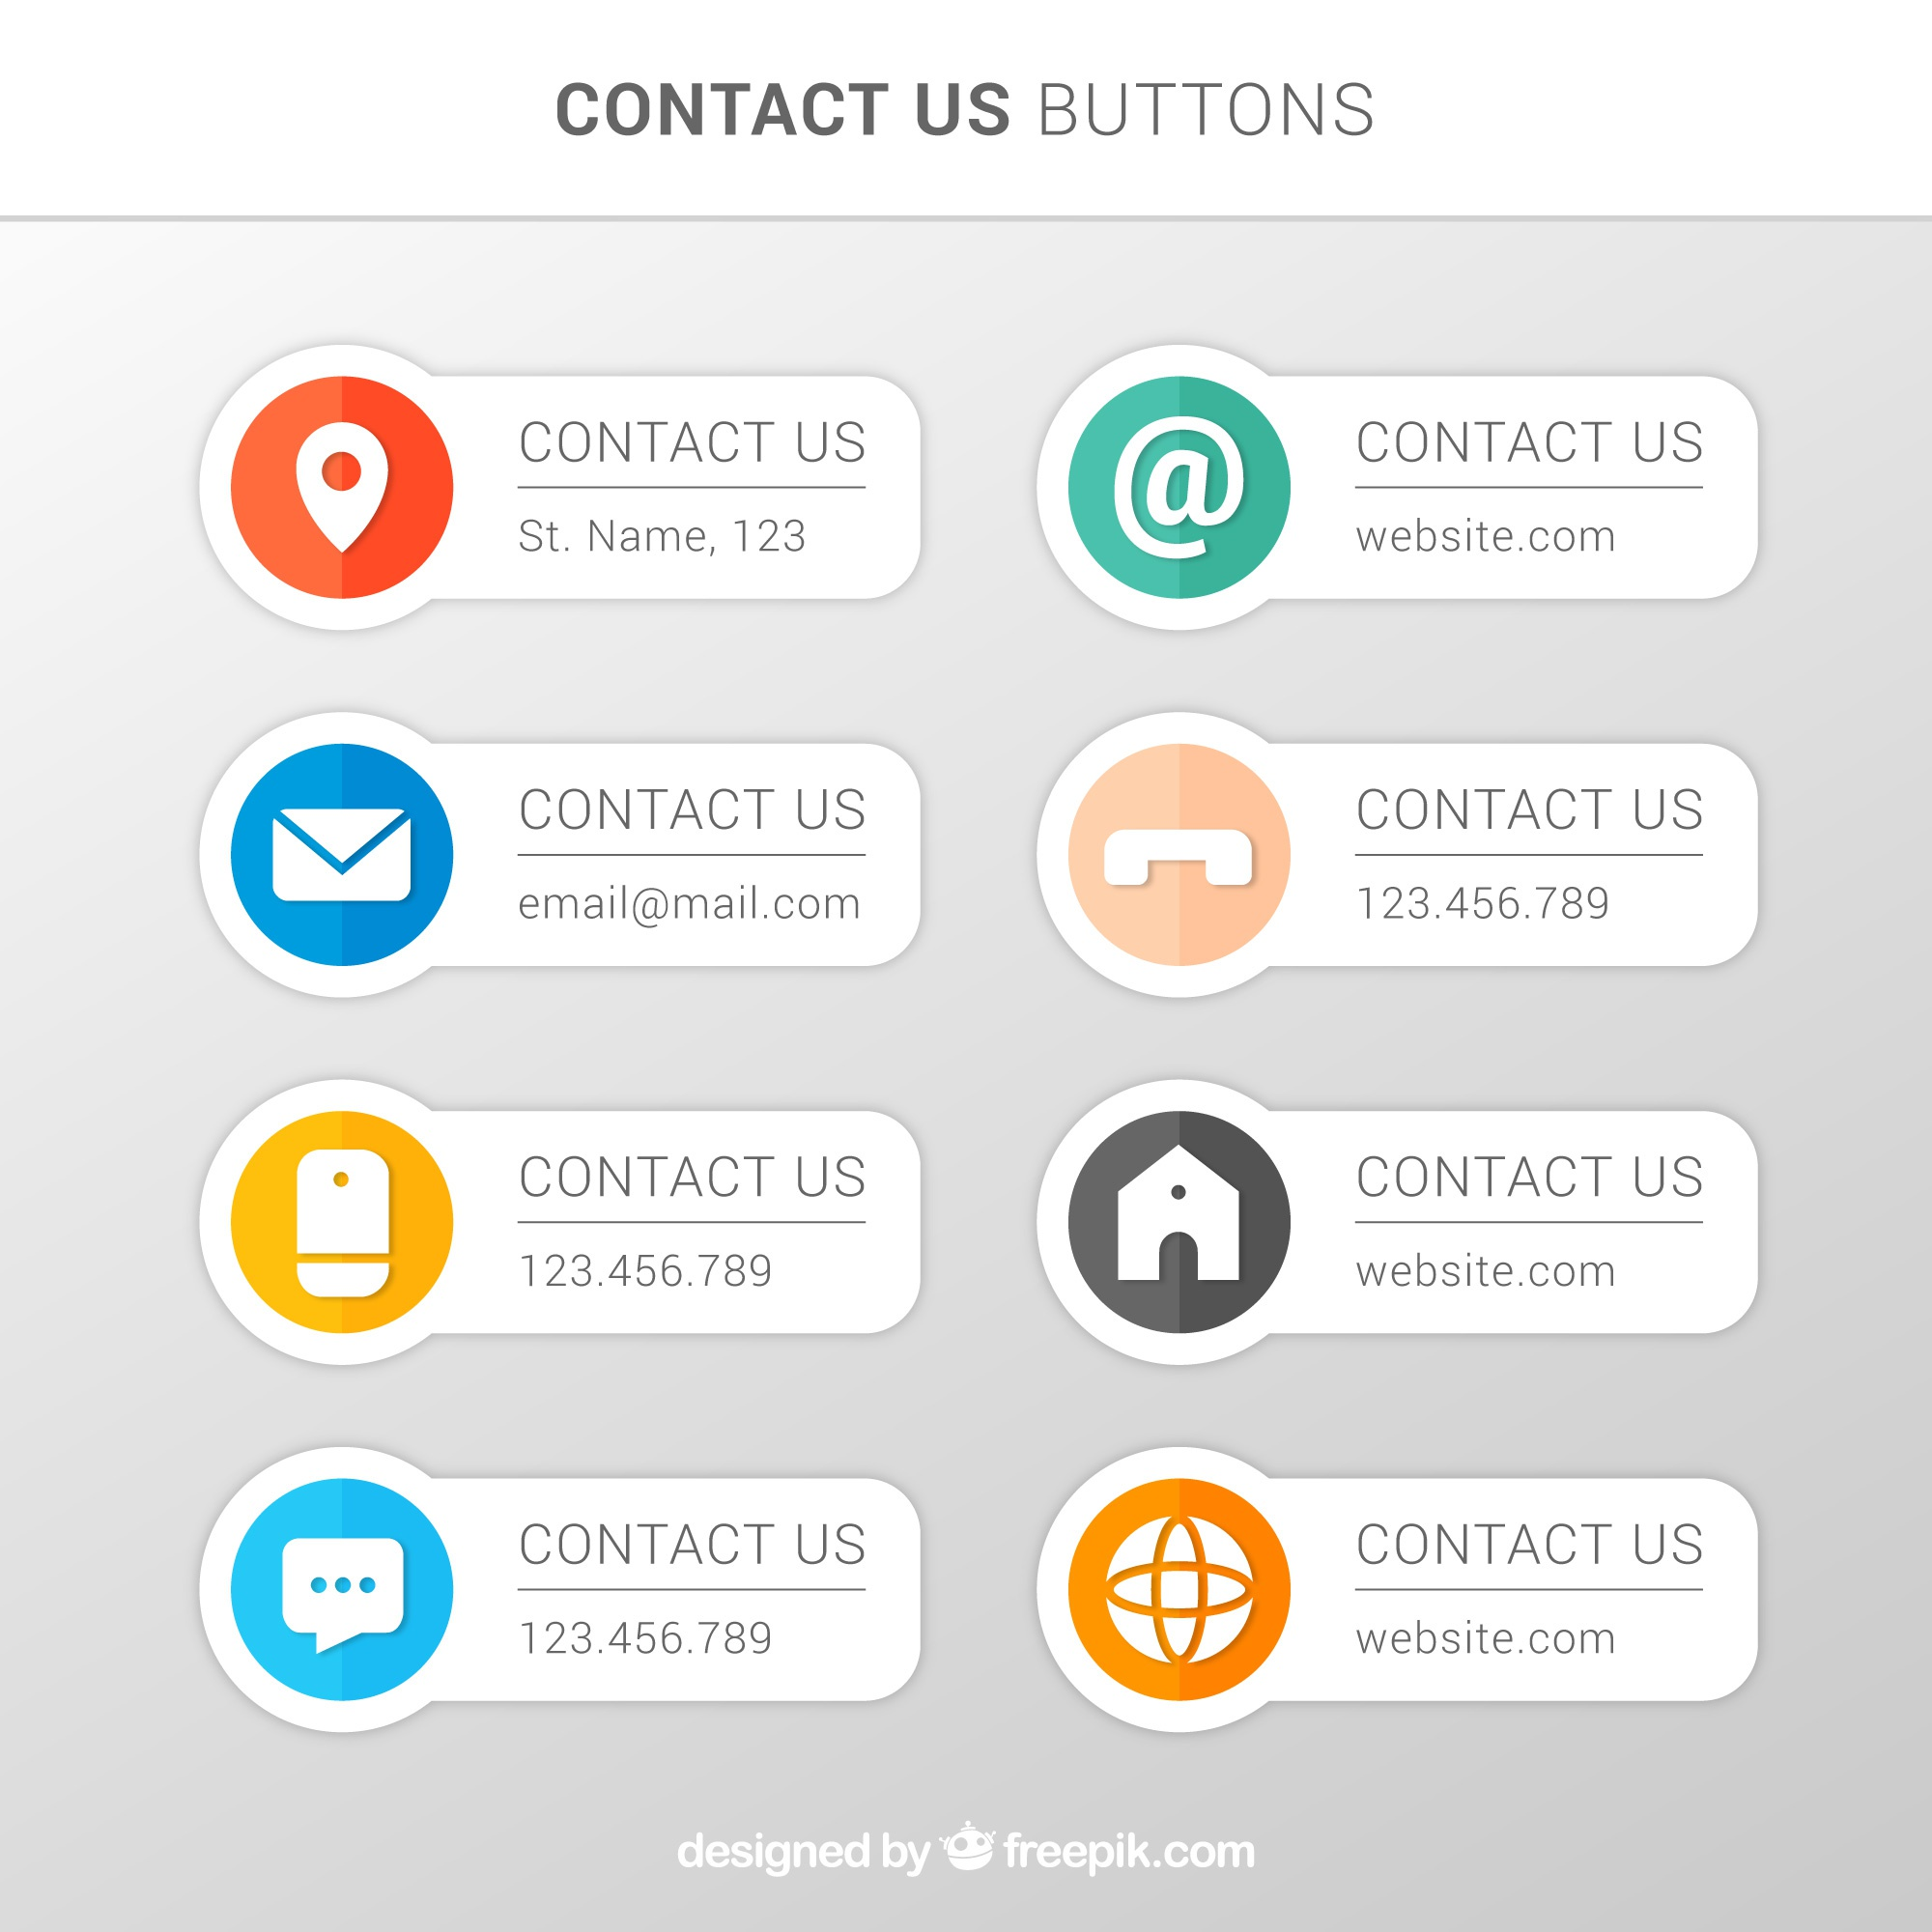 Various contact buttons in flat design